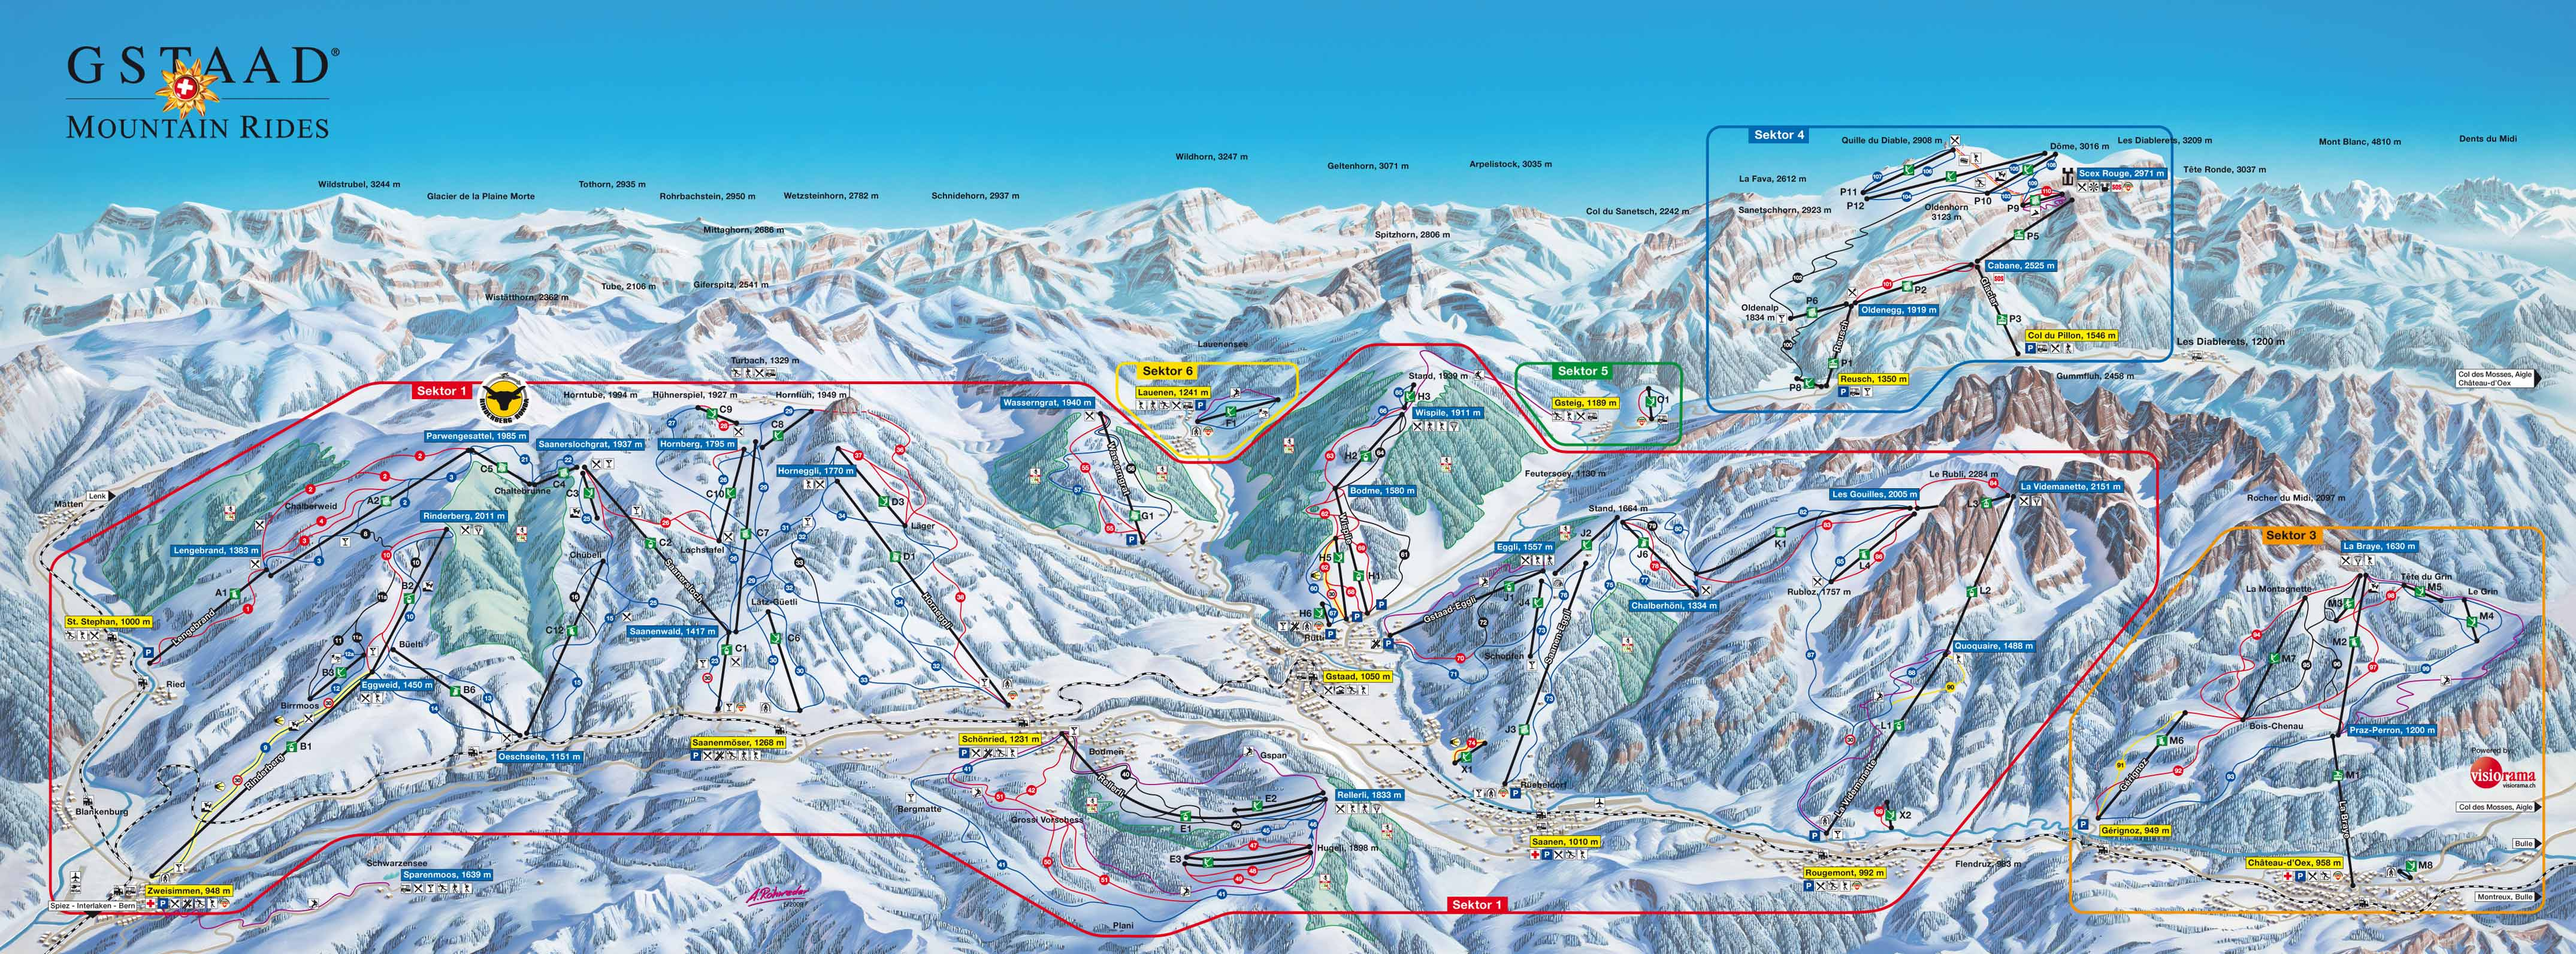 Gstaad Piste Maps and Ski Resort Map PowderBeds